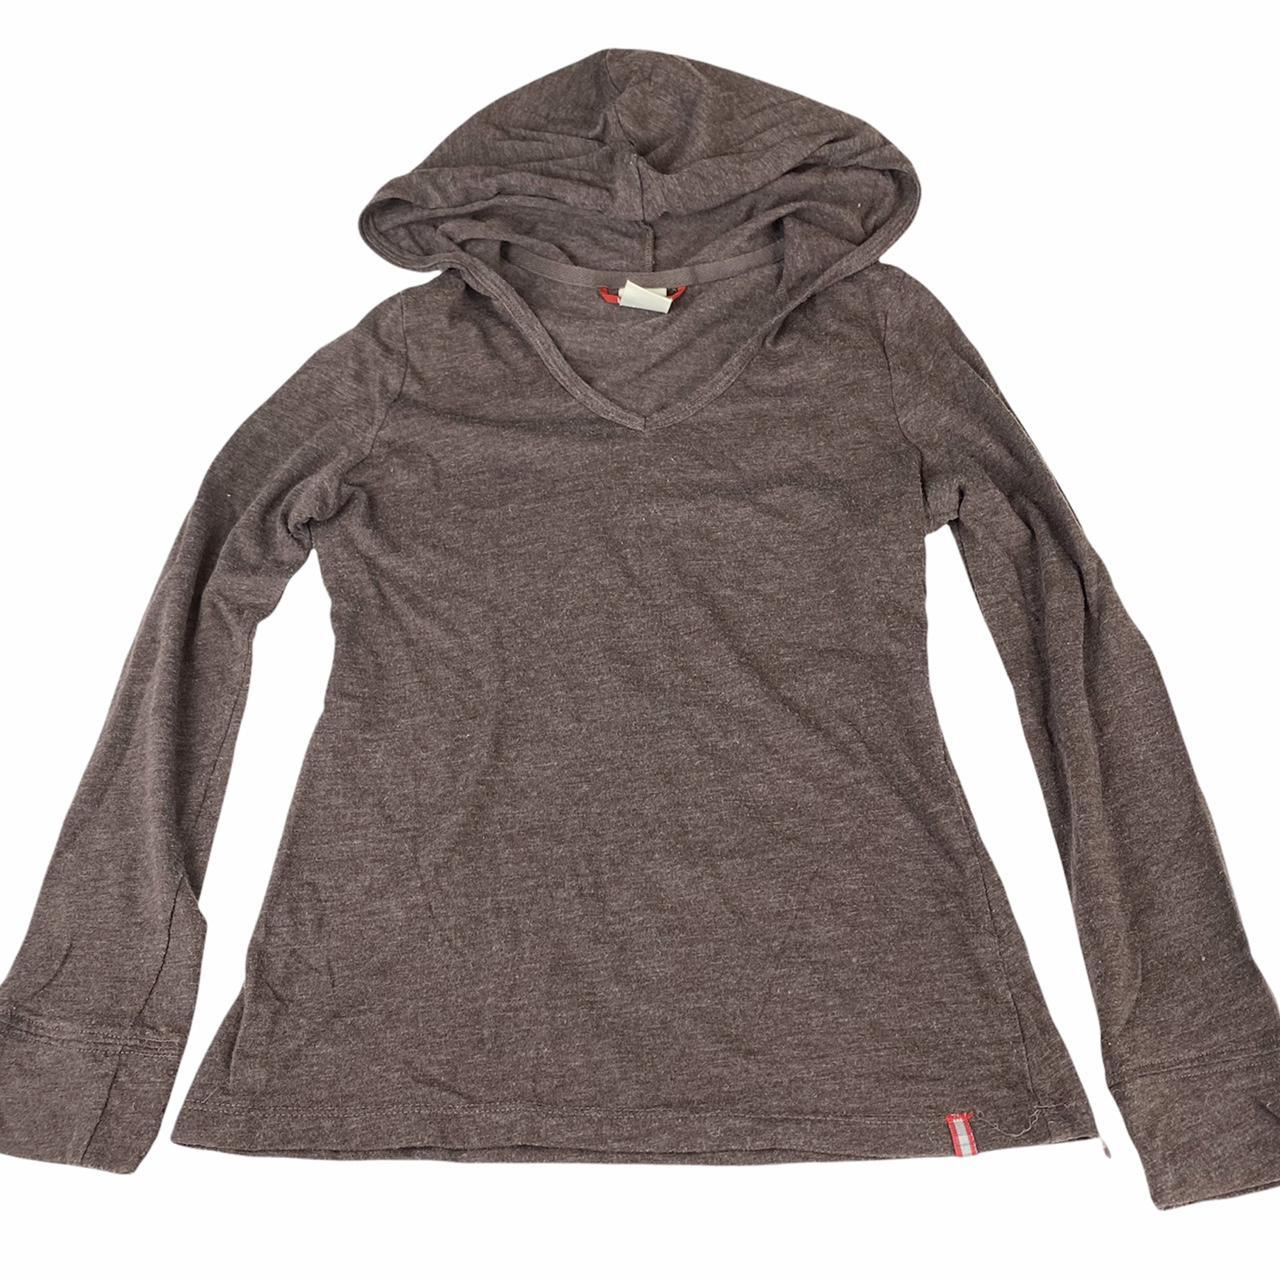 Product Image 1 - 🧛🏻♀️The Bellacore top🧛🏻♀️ genuine y2k hooded